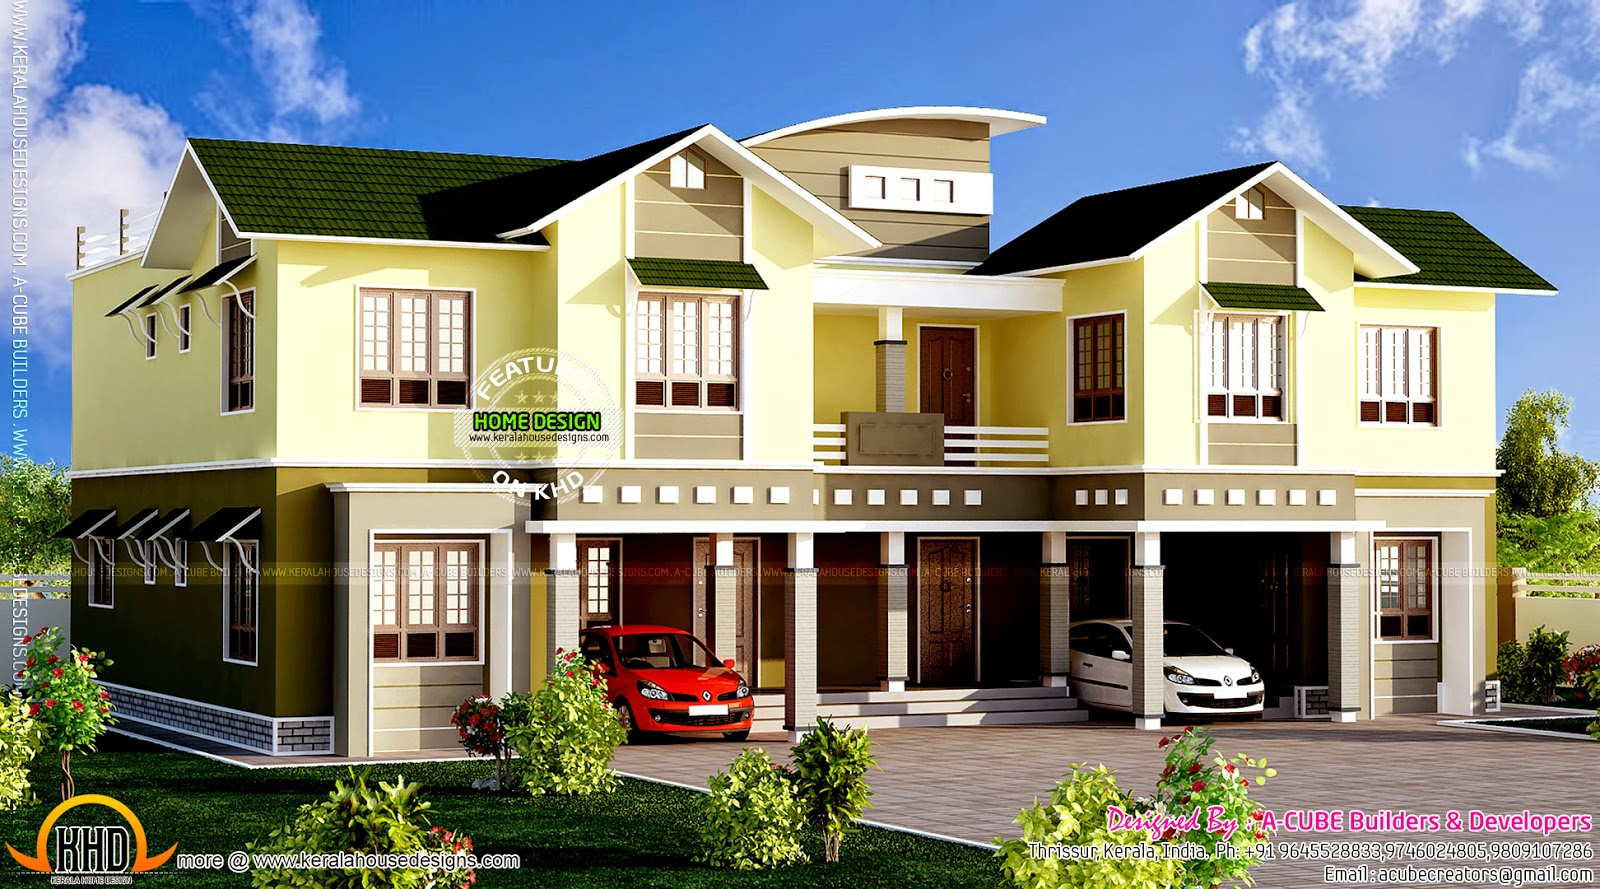 Luxury duplex home kerala home design and floor plans - Luxury duplex house plans ...